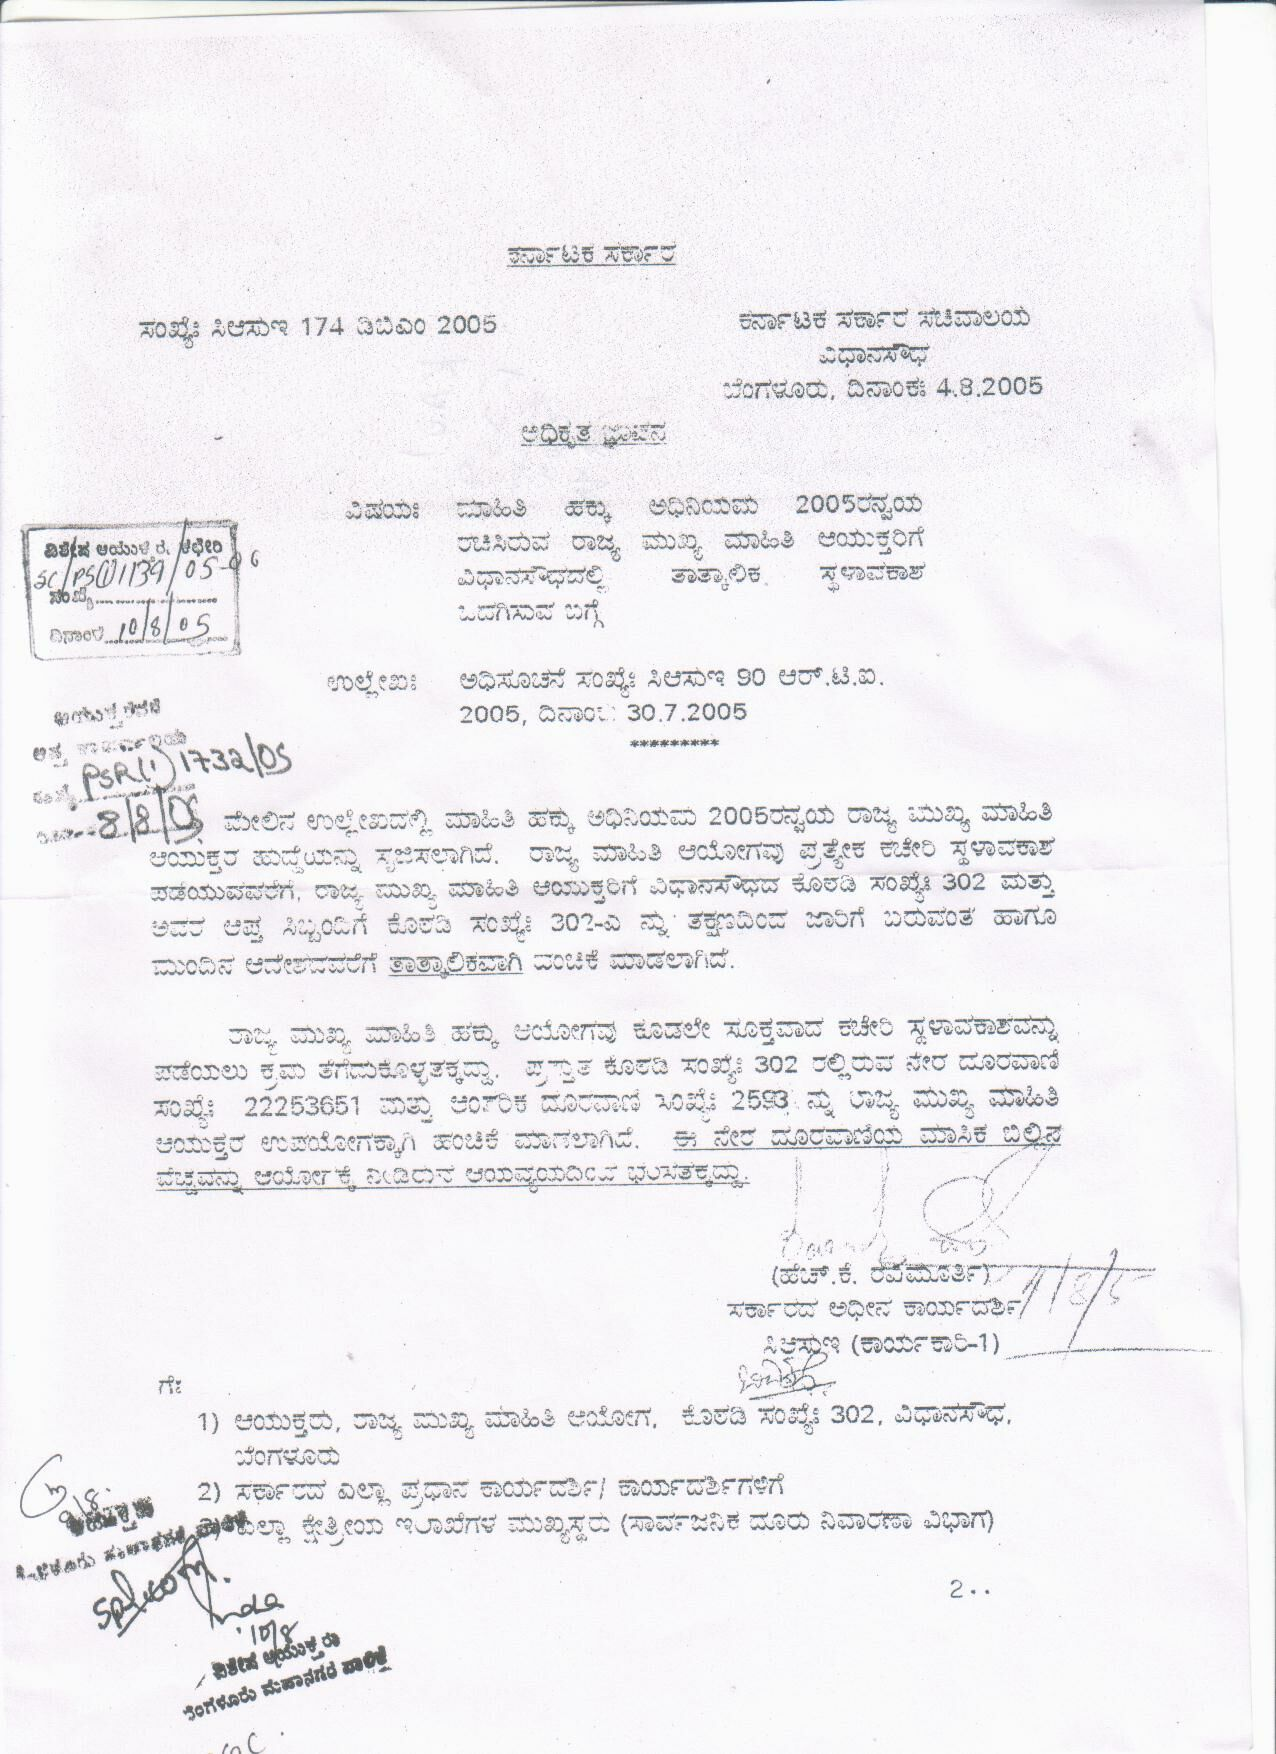 State level rti karnataka the karnataka government secretariat has issued a circular notifying the creation of the post of the state chief information commissioner spiritdancerdesigns Image collections